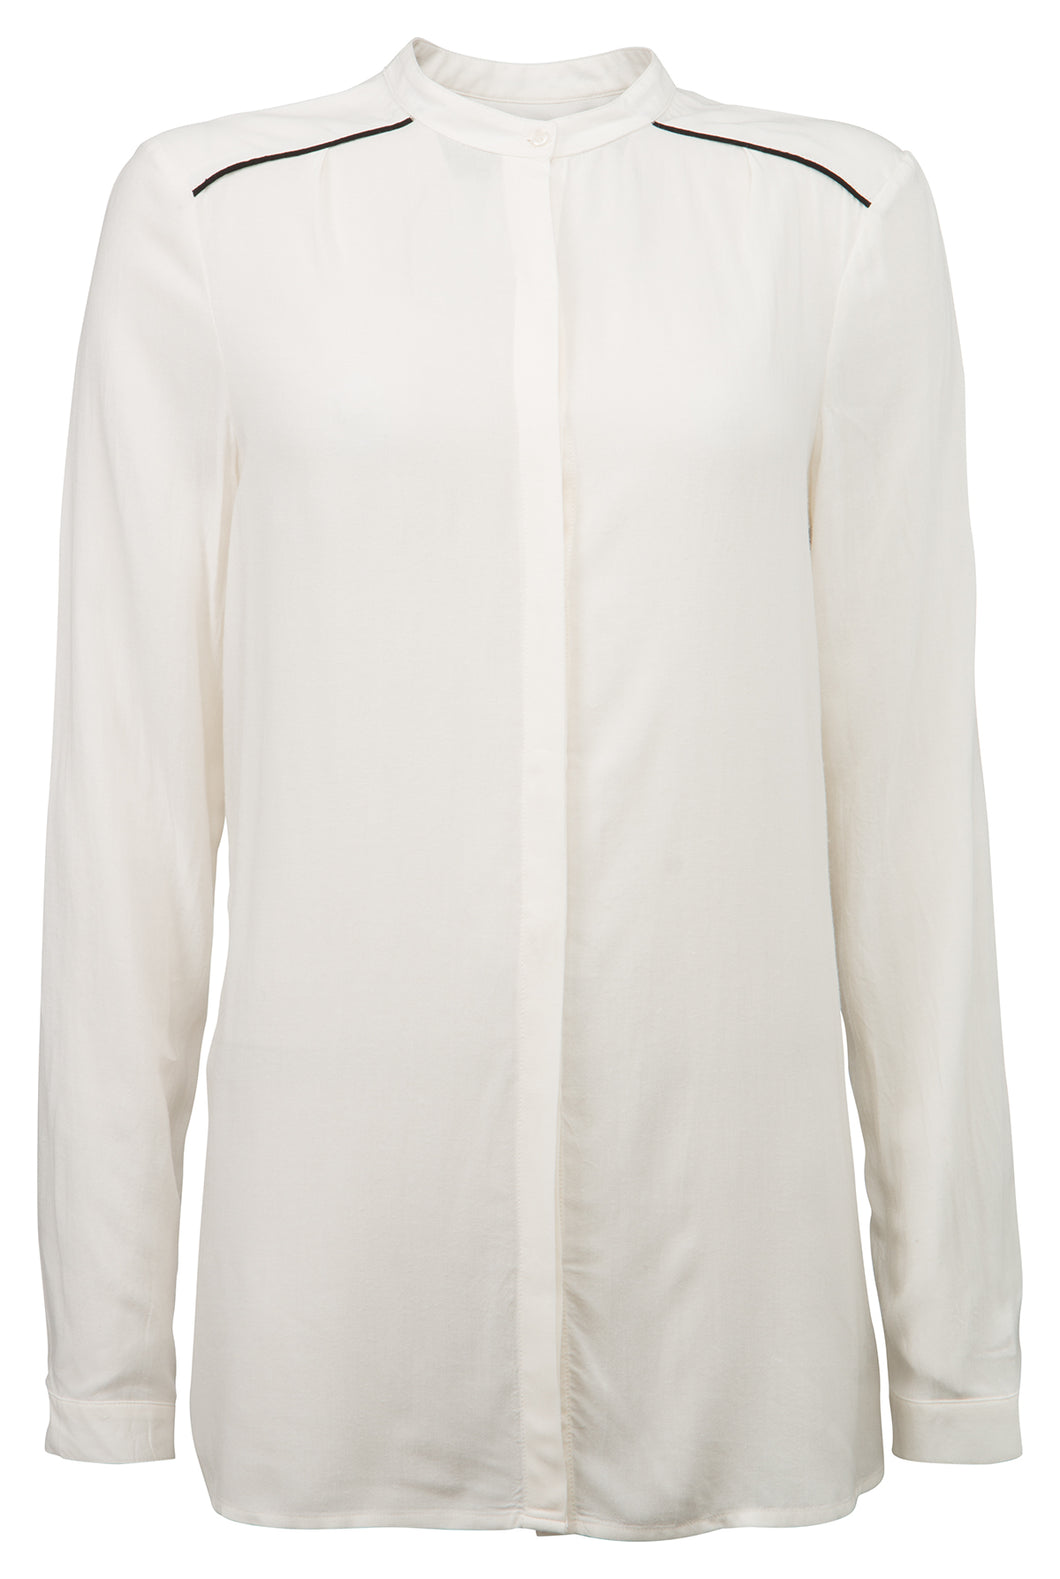 YAYA VISCOSE SHIRT STANDING COLLAR